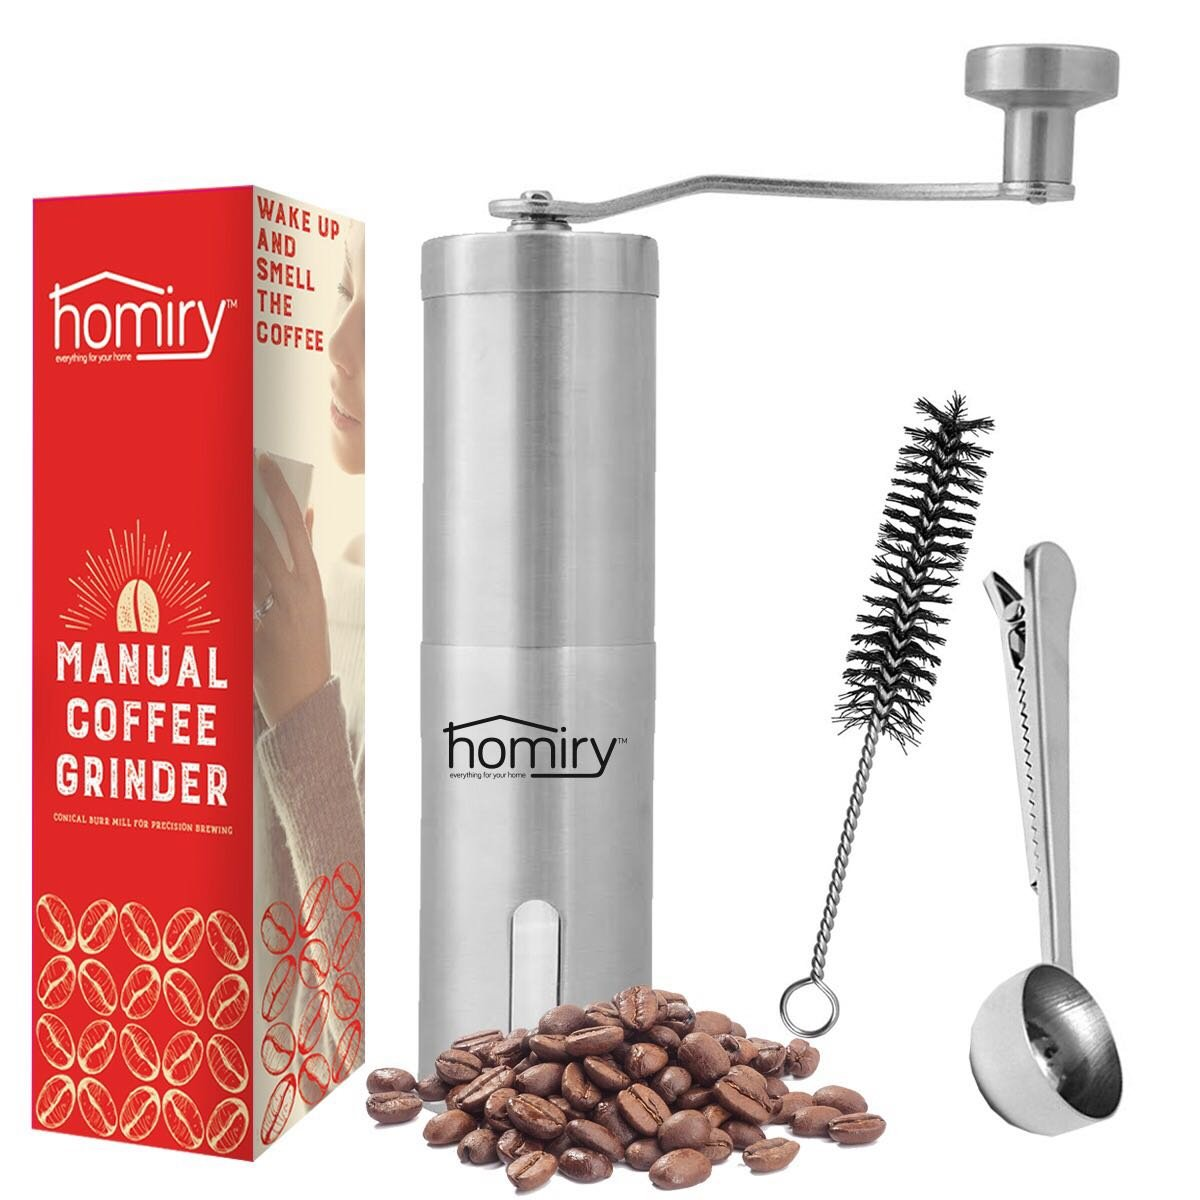 Precision Manual Coffee Bean Grinder By Homiry: Best Portable, Easily Adjustable, Canister Ceramic Burr, Spice and Herbs, Hand Crank Mill-Made Of Stainless Steel-Free Pouch Bag, Cleaning Brush & Scoop by Homiry (Image #1)